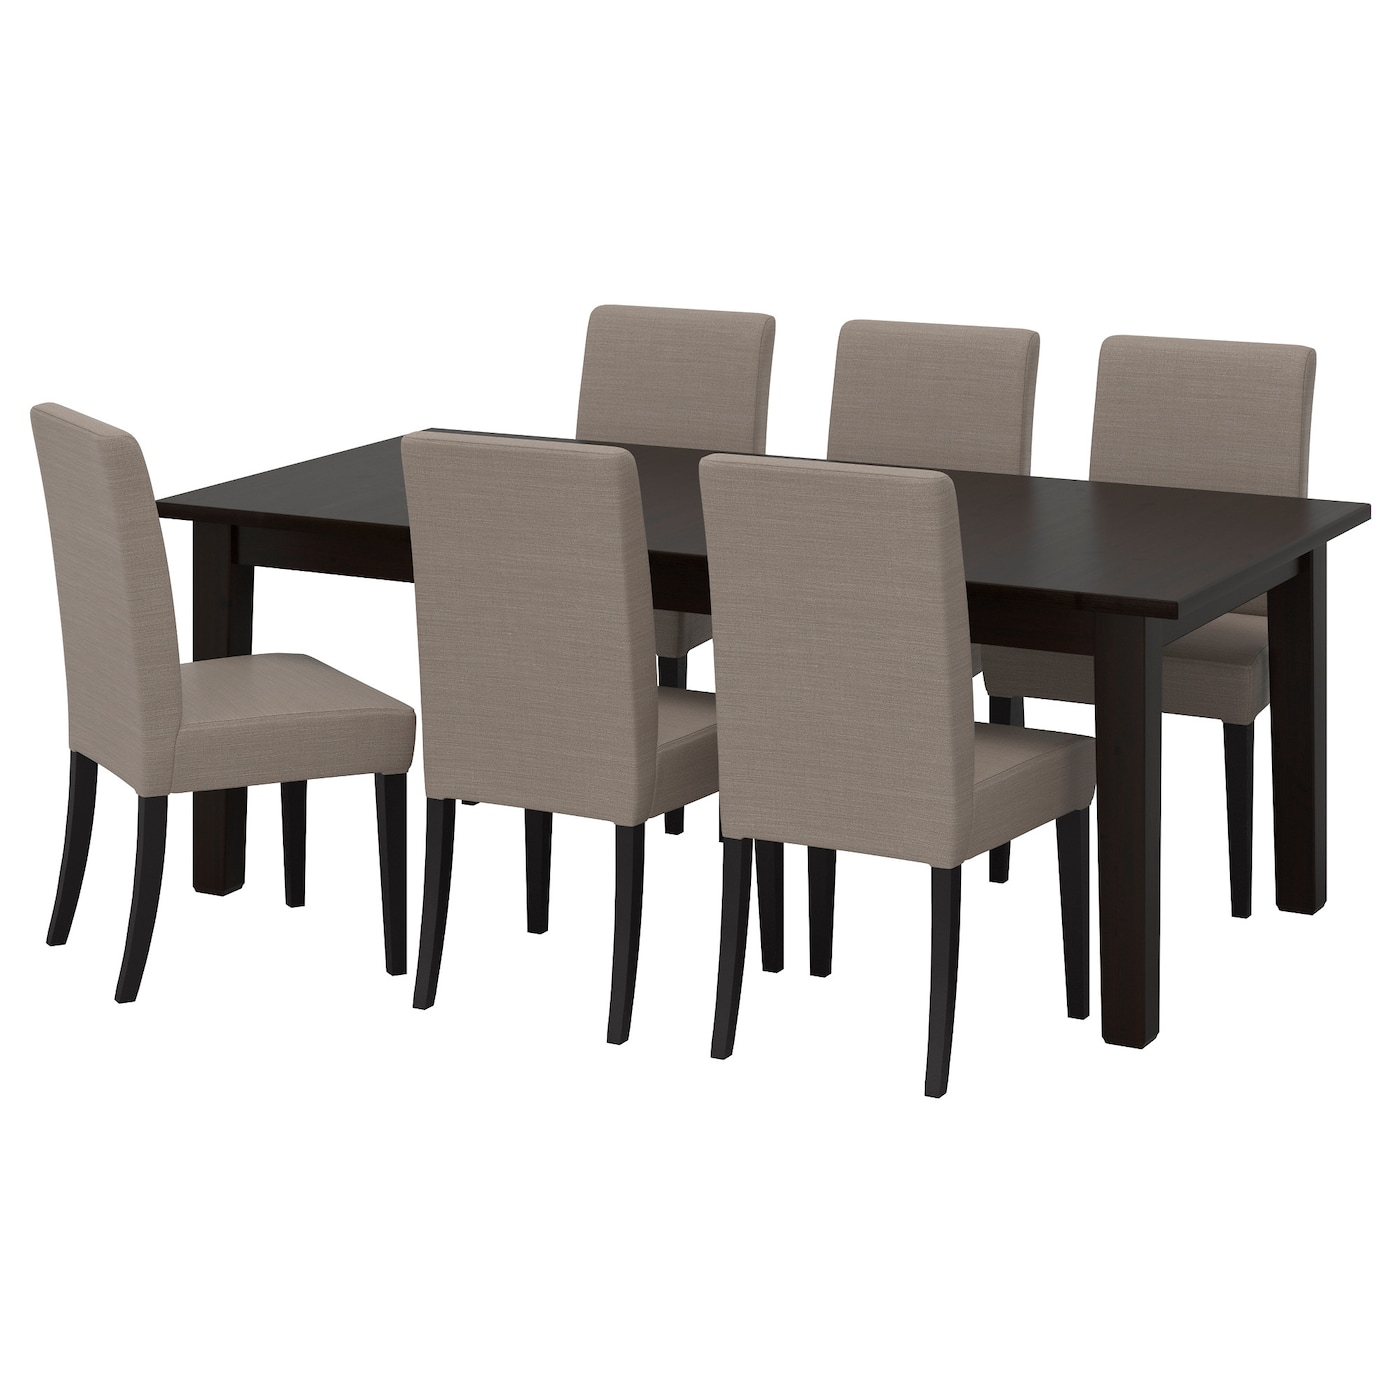 henriksdal storn s table and 6 chairs brown black nolhaga. Black Bedroom Furniture Sets. Home Design Ideas